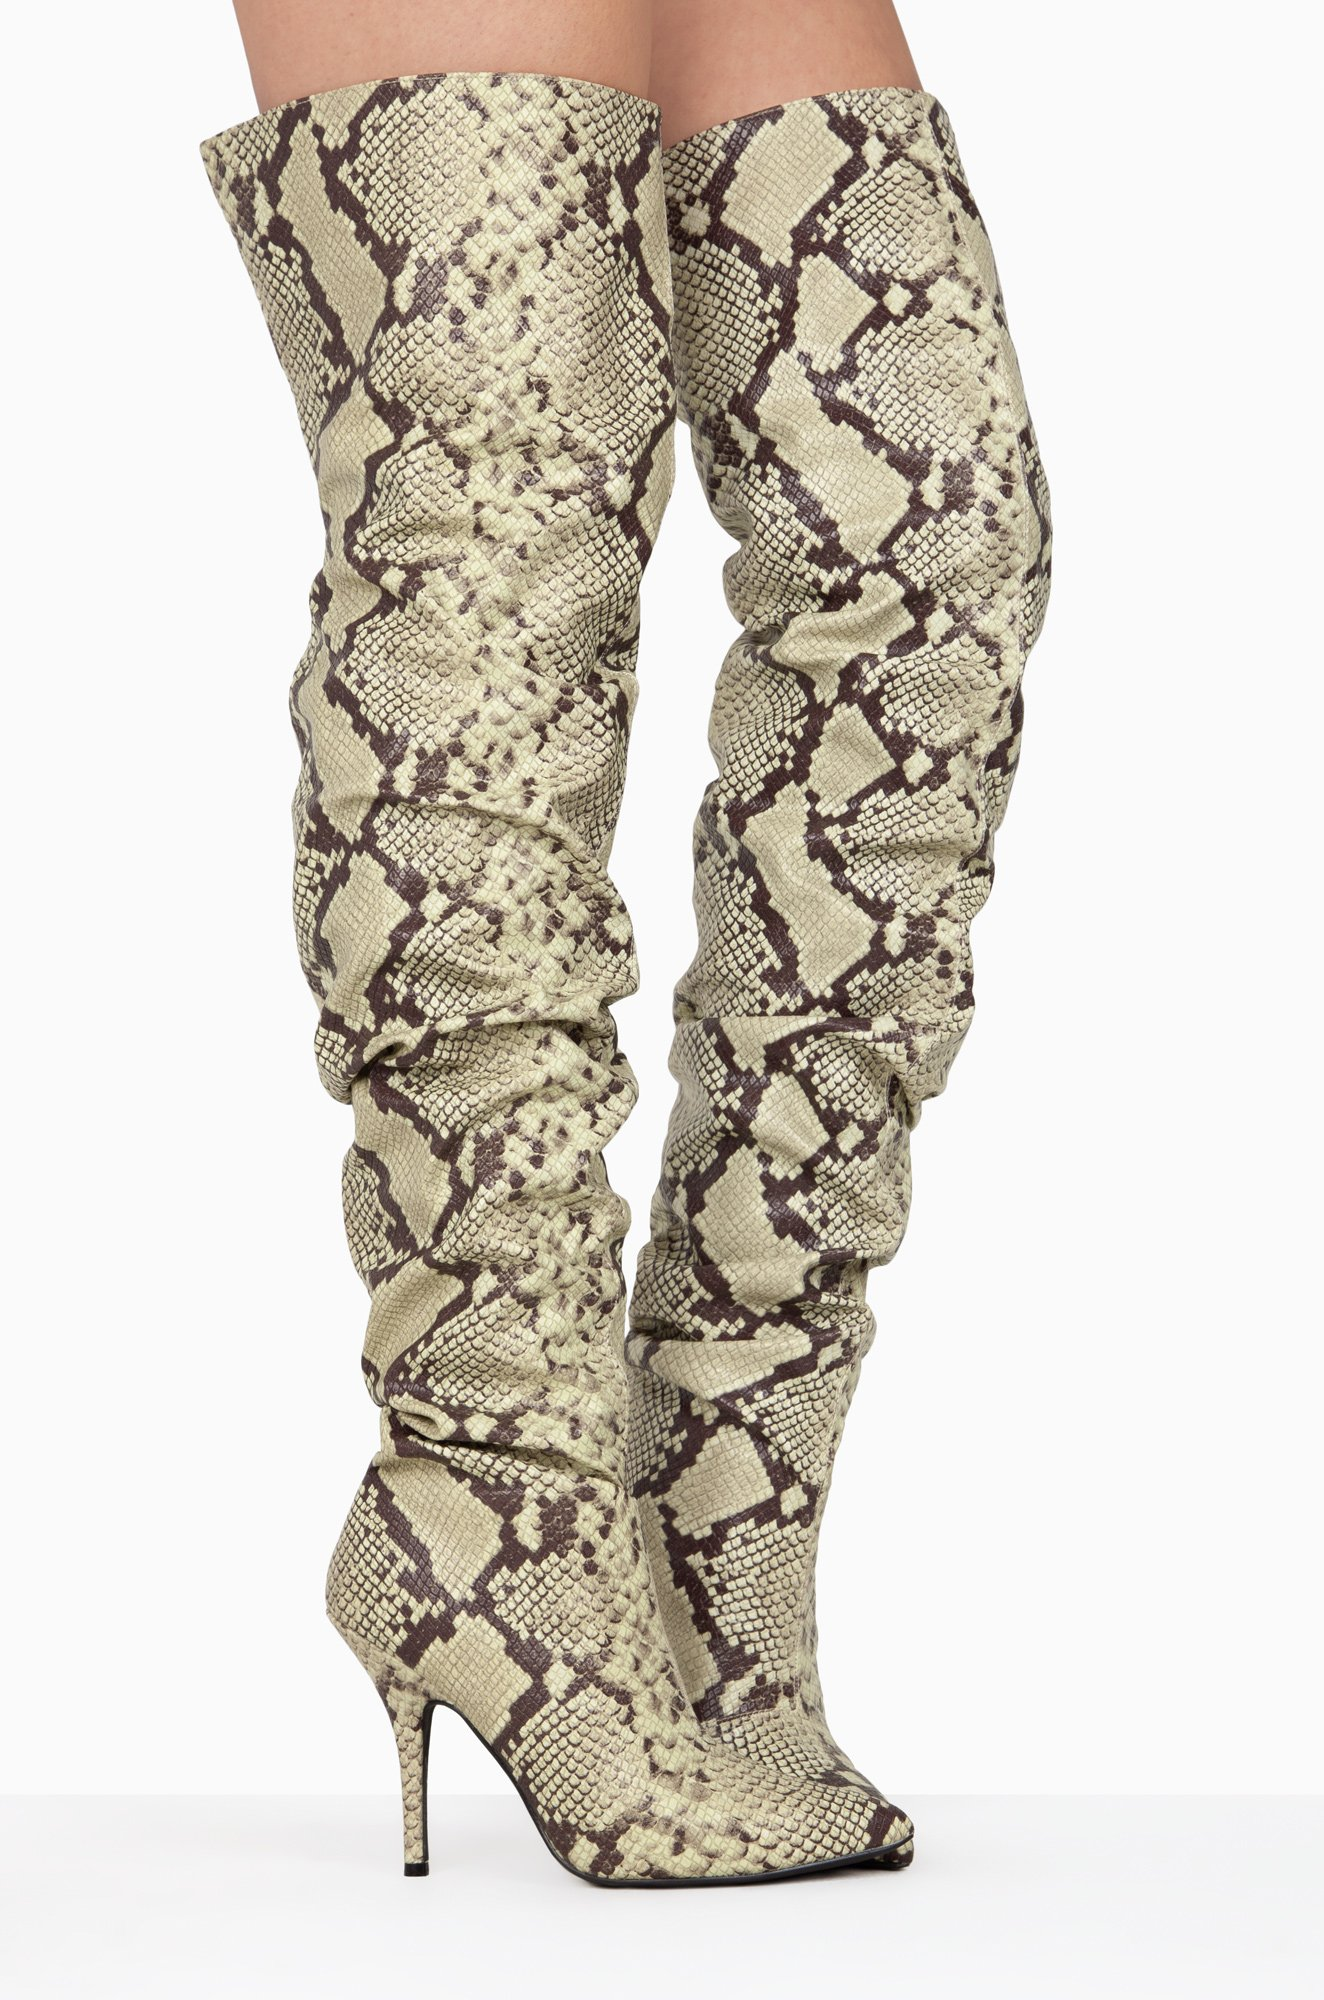 Cape-Robbin-Bown-Snake-Thigh-High-Slouch-Pointed-Toe-Over-The-Knee-Stiletto-Boot thumbnail 48